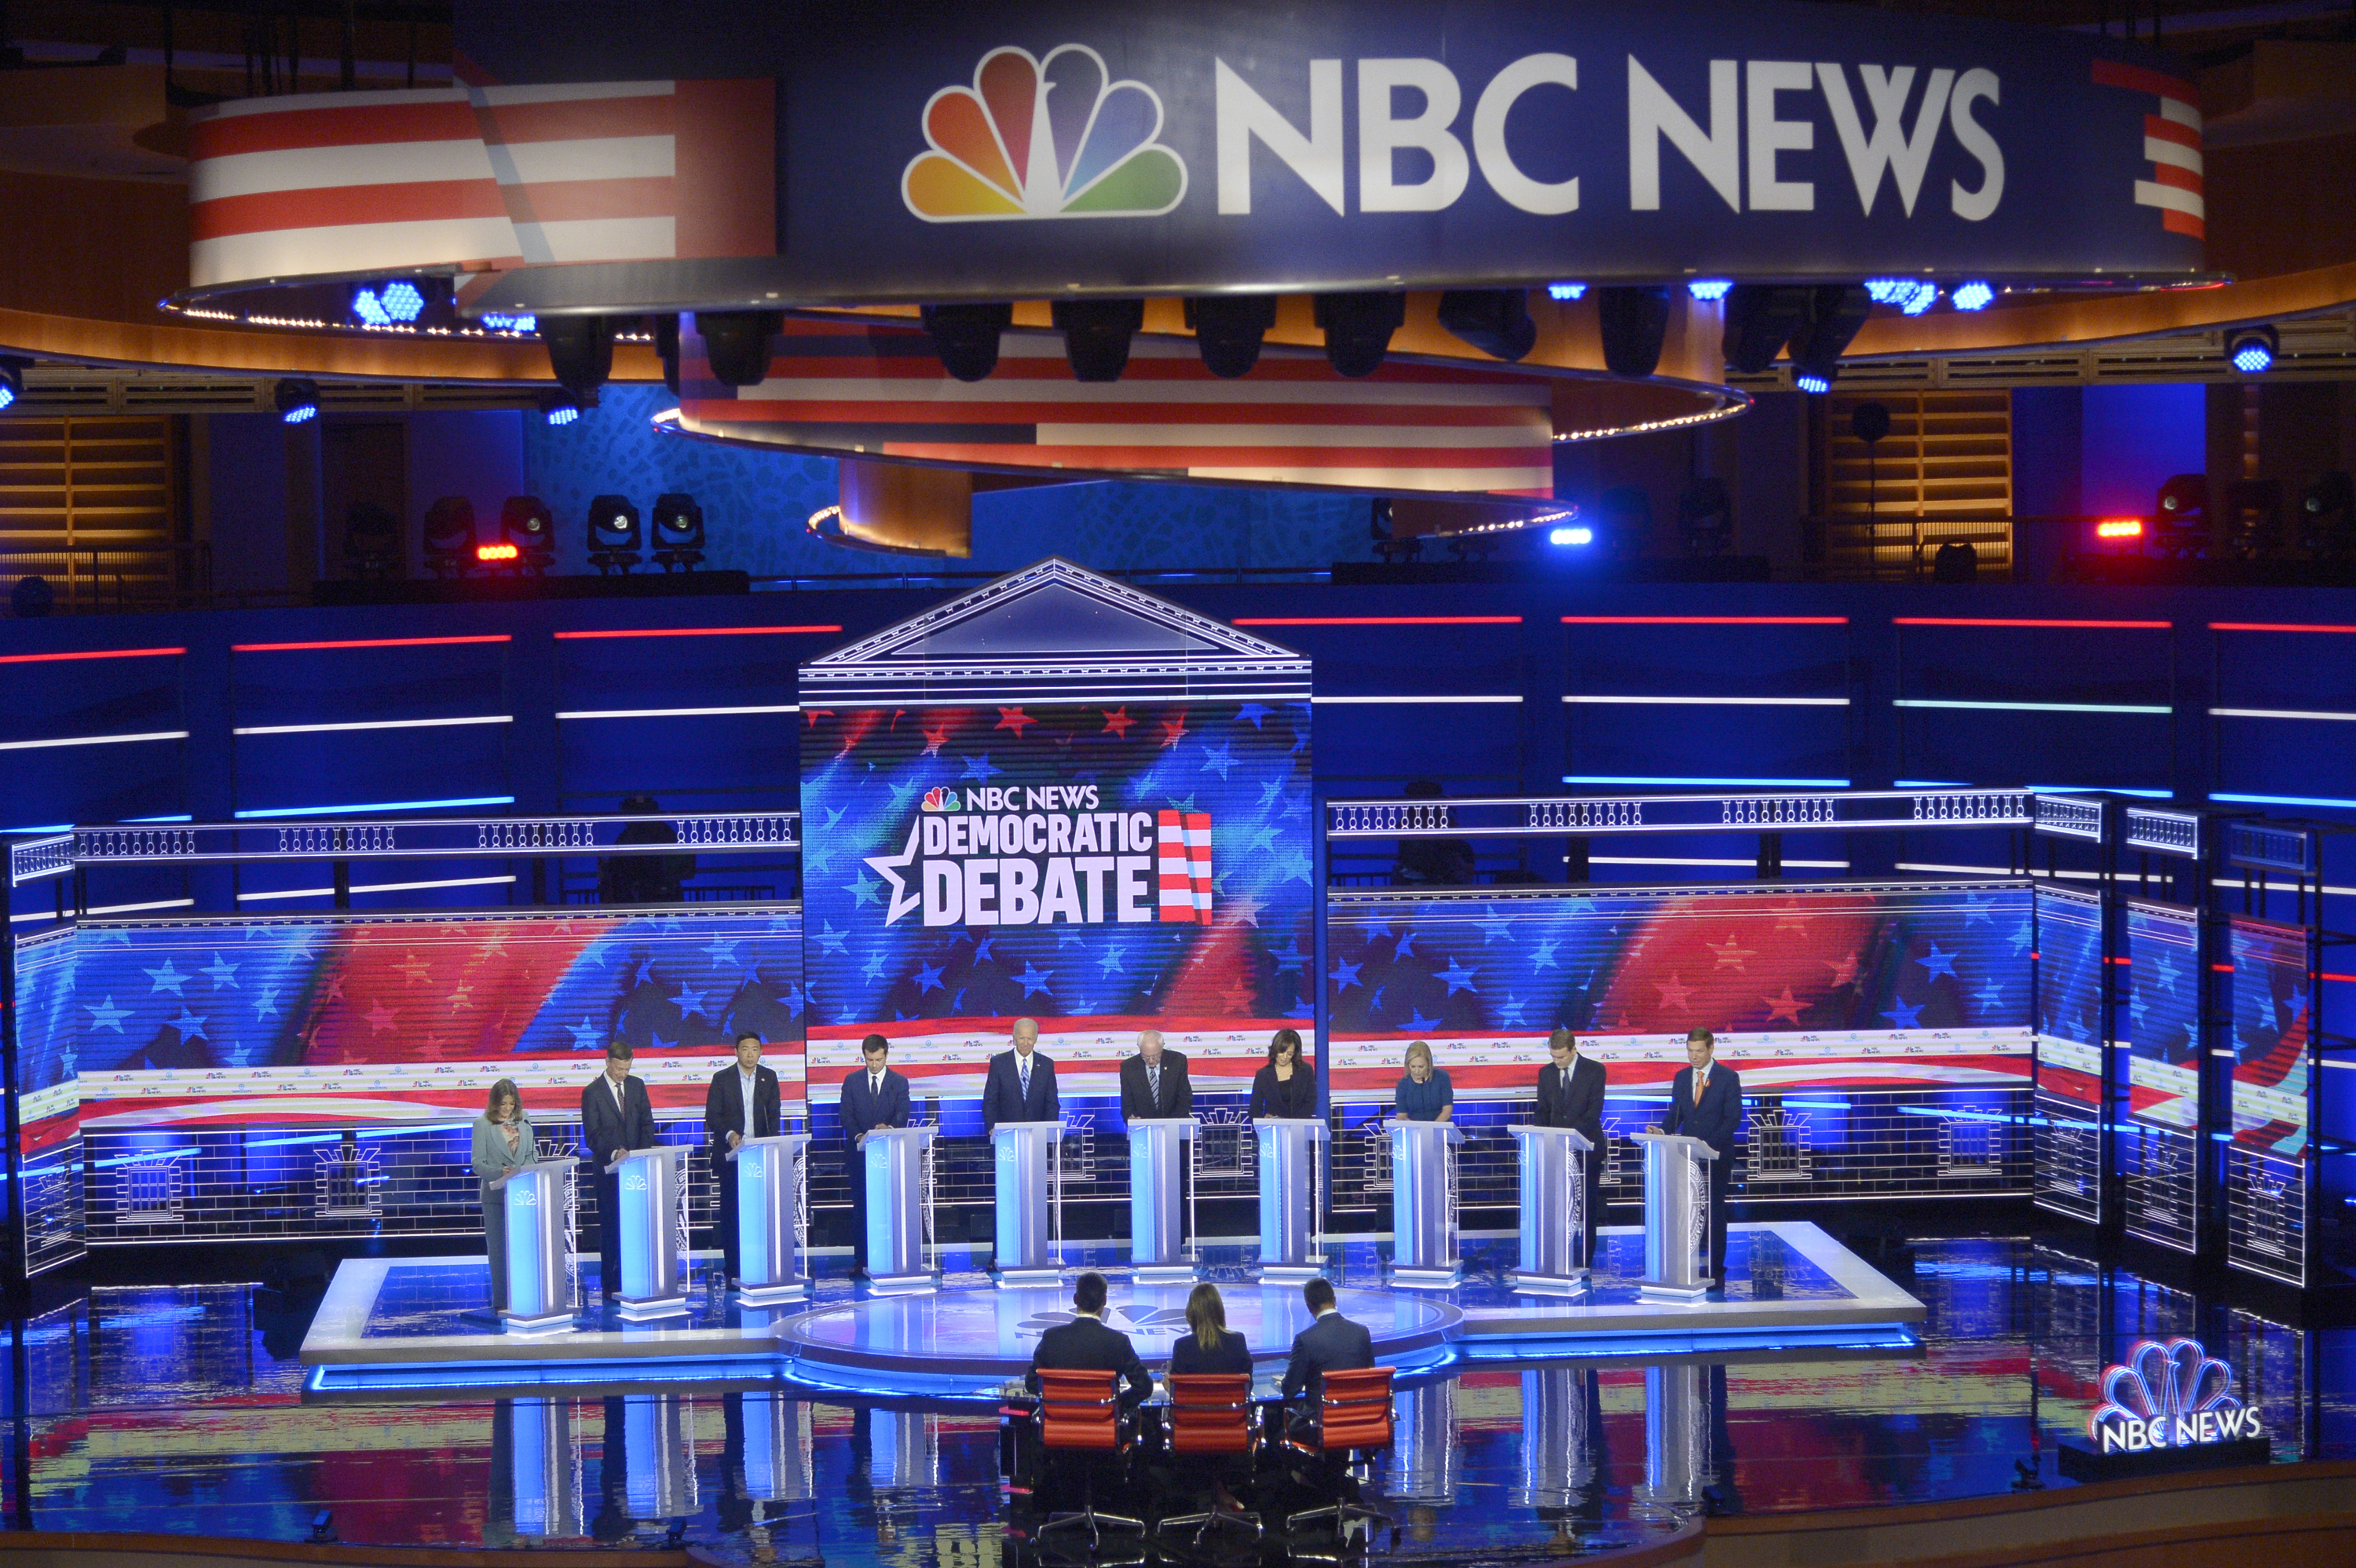 NBC News Election Coverage - Season 2019